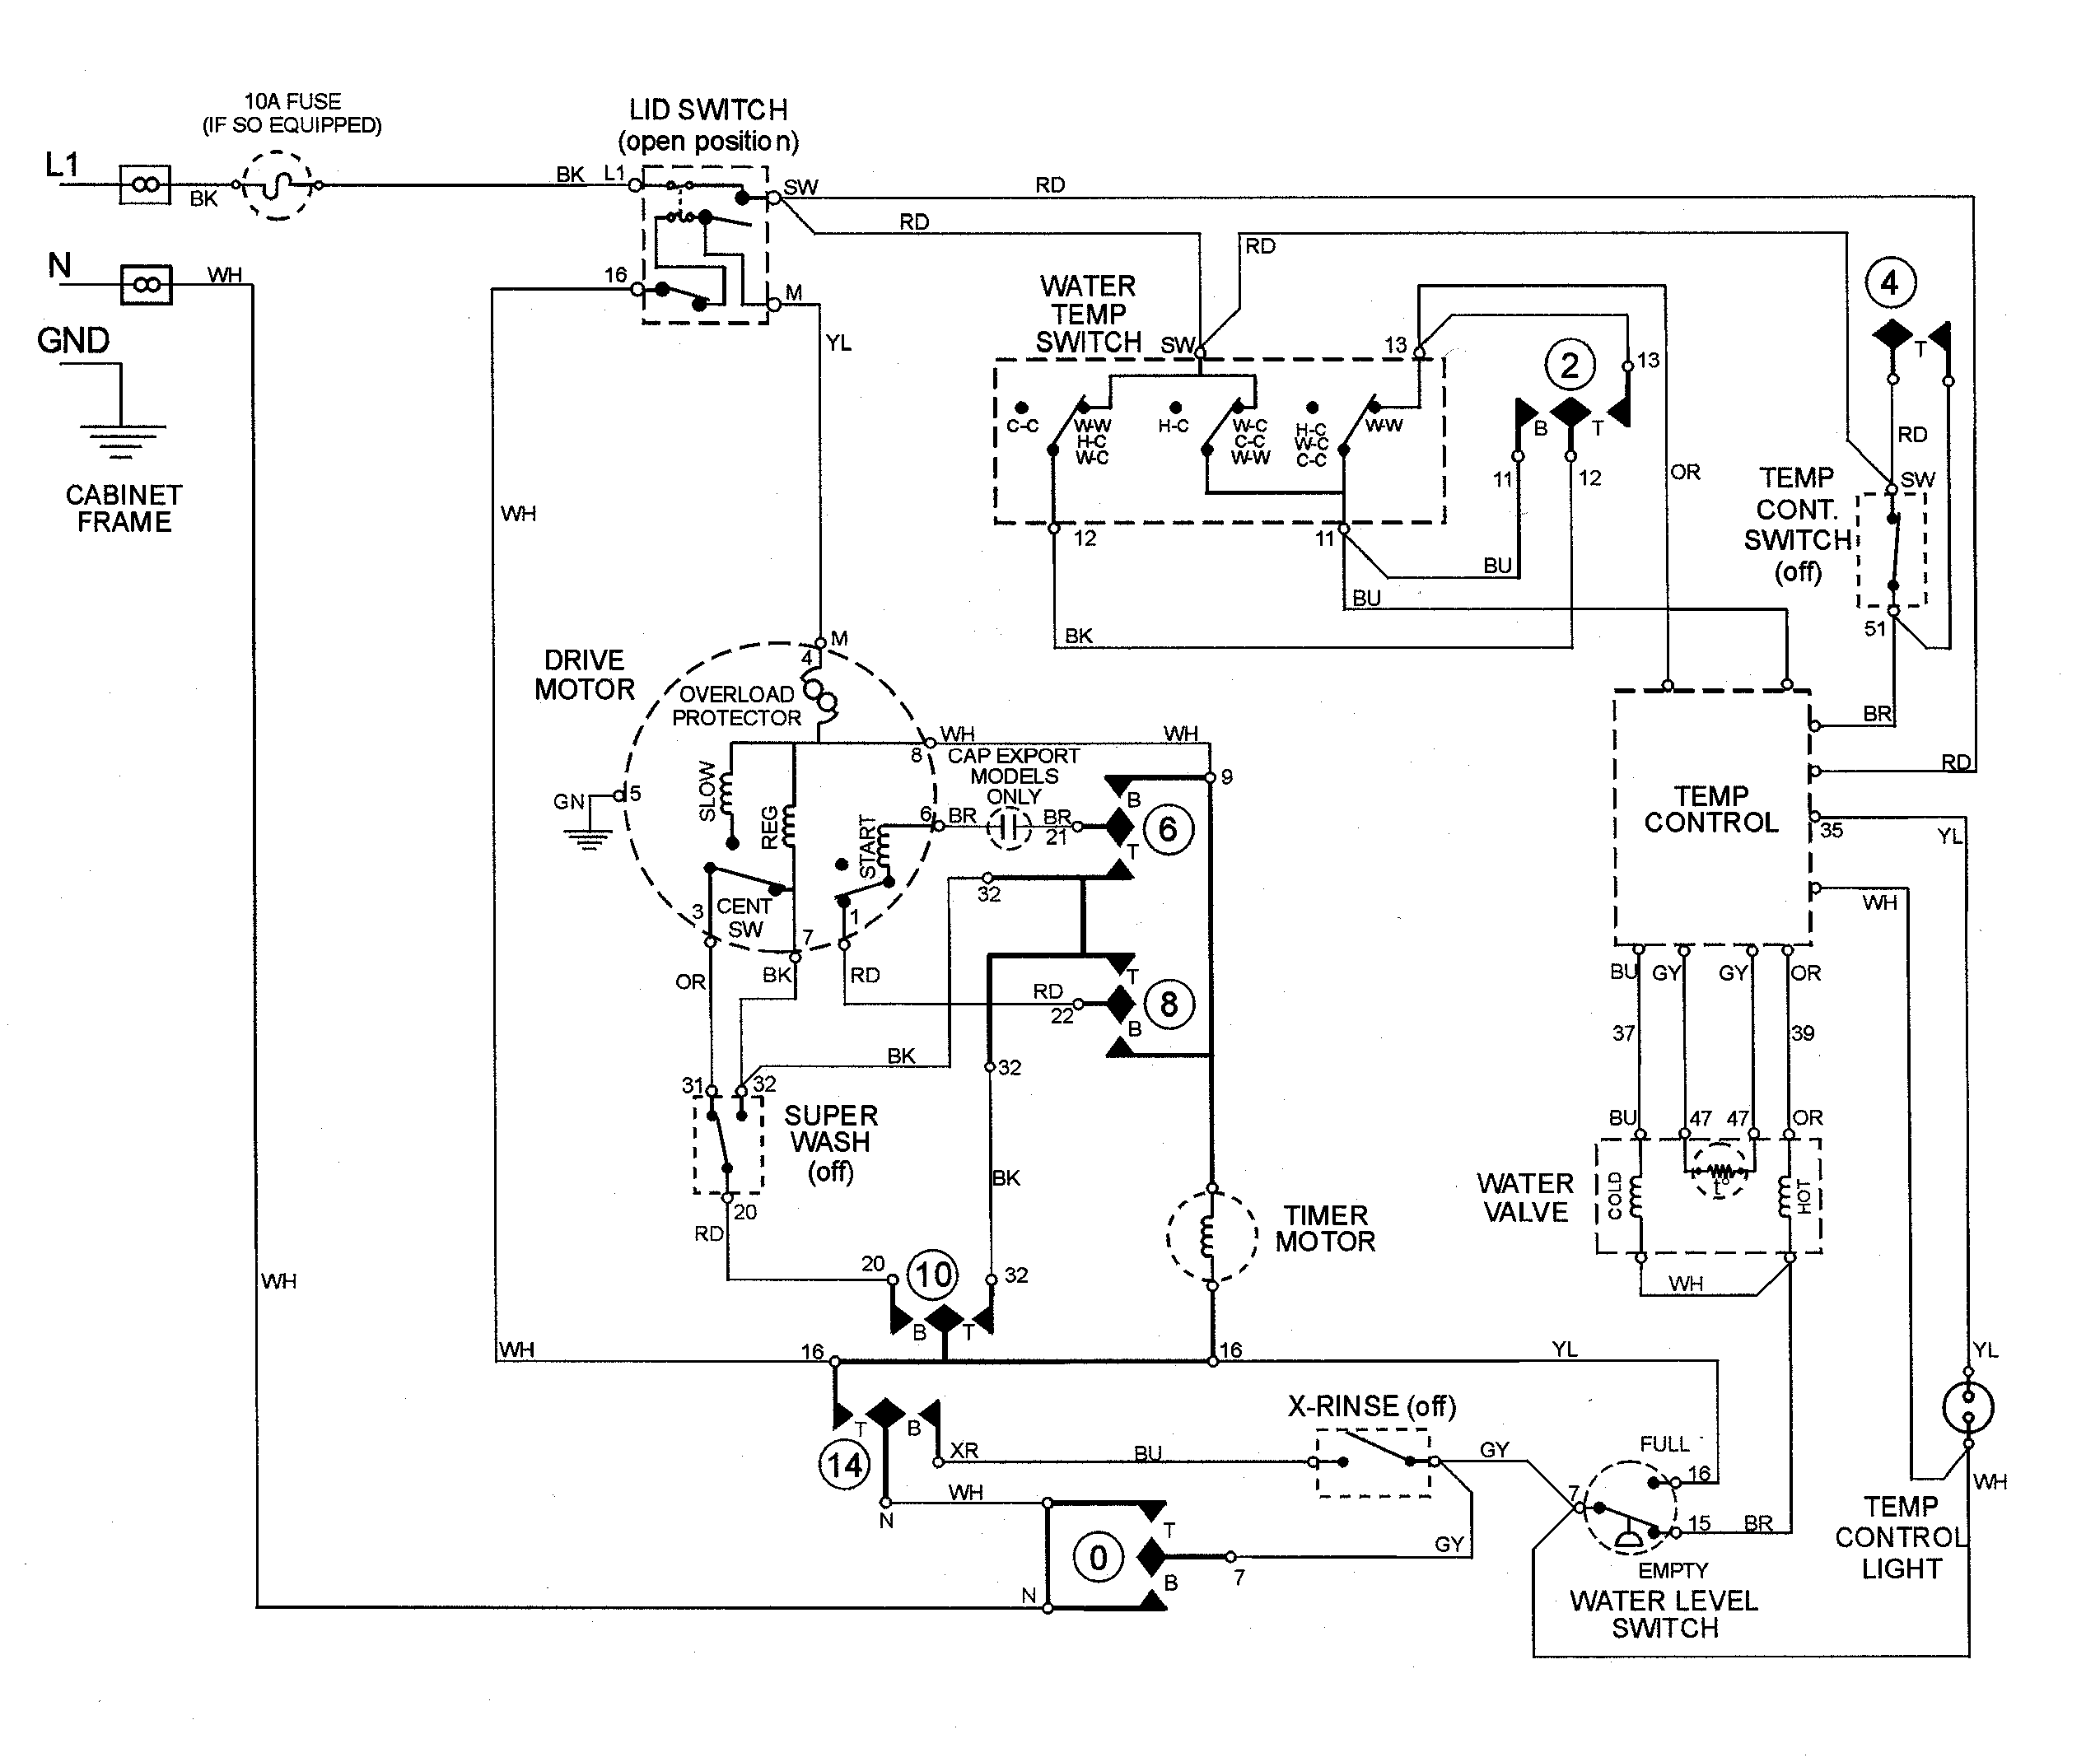 Ge Washer Schematic Diagram - Wiring Diagram K10 on